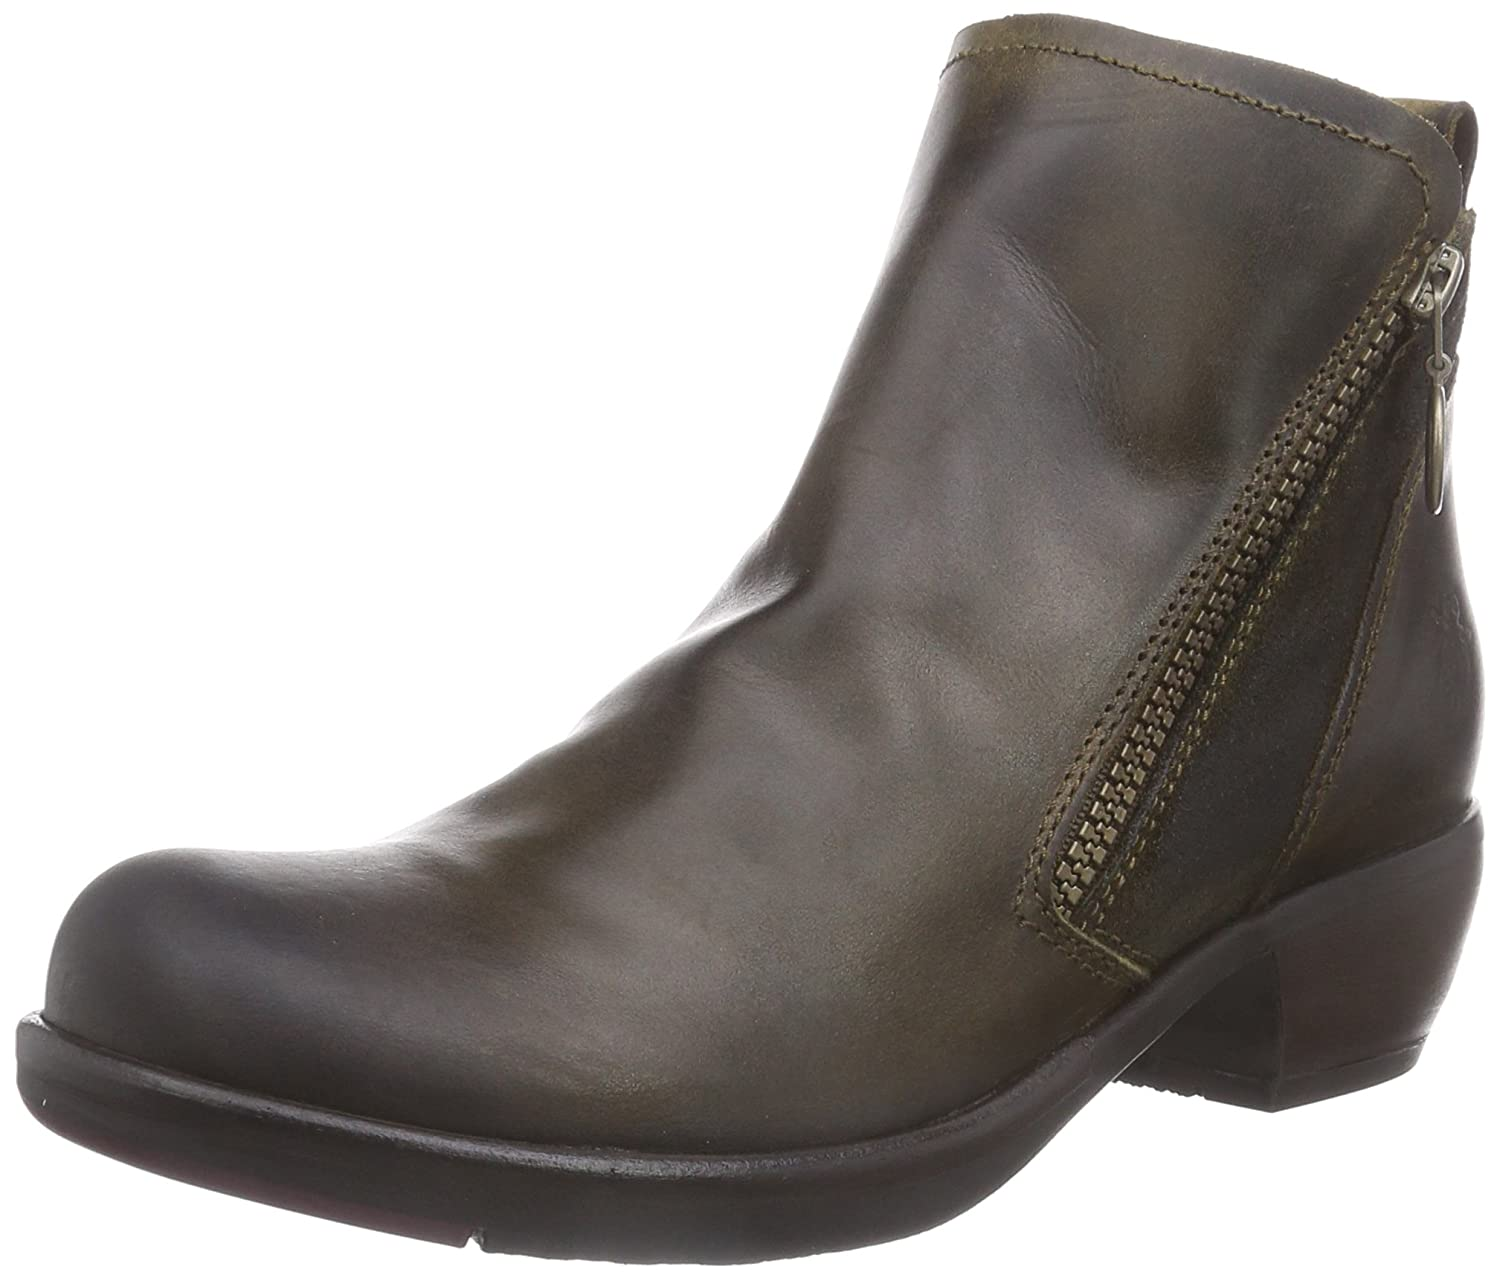 FLY London Women's Meli Boot B00UK9O11K 38 EU/7.5-8 M US|Olive